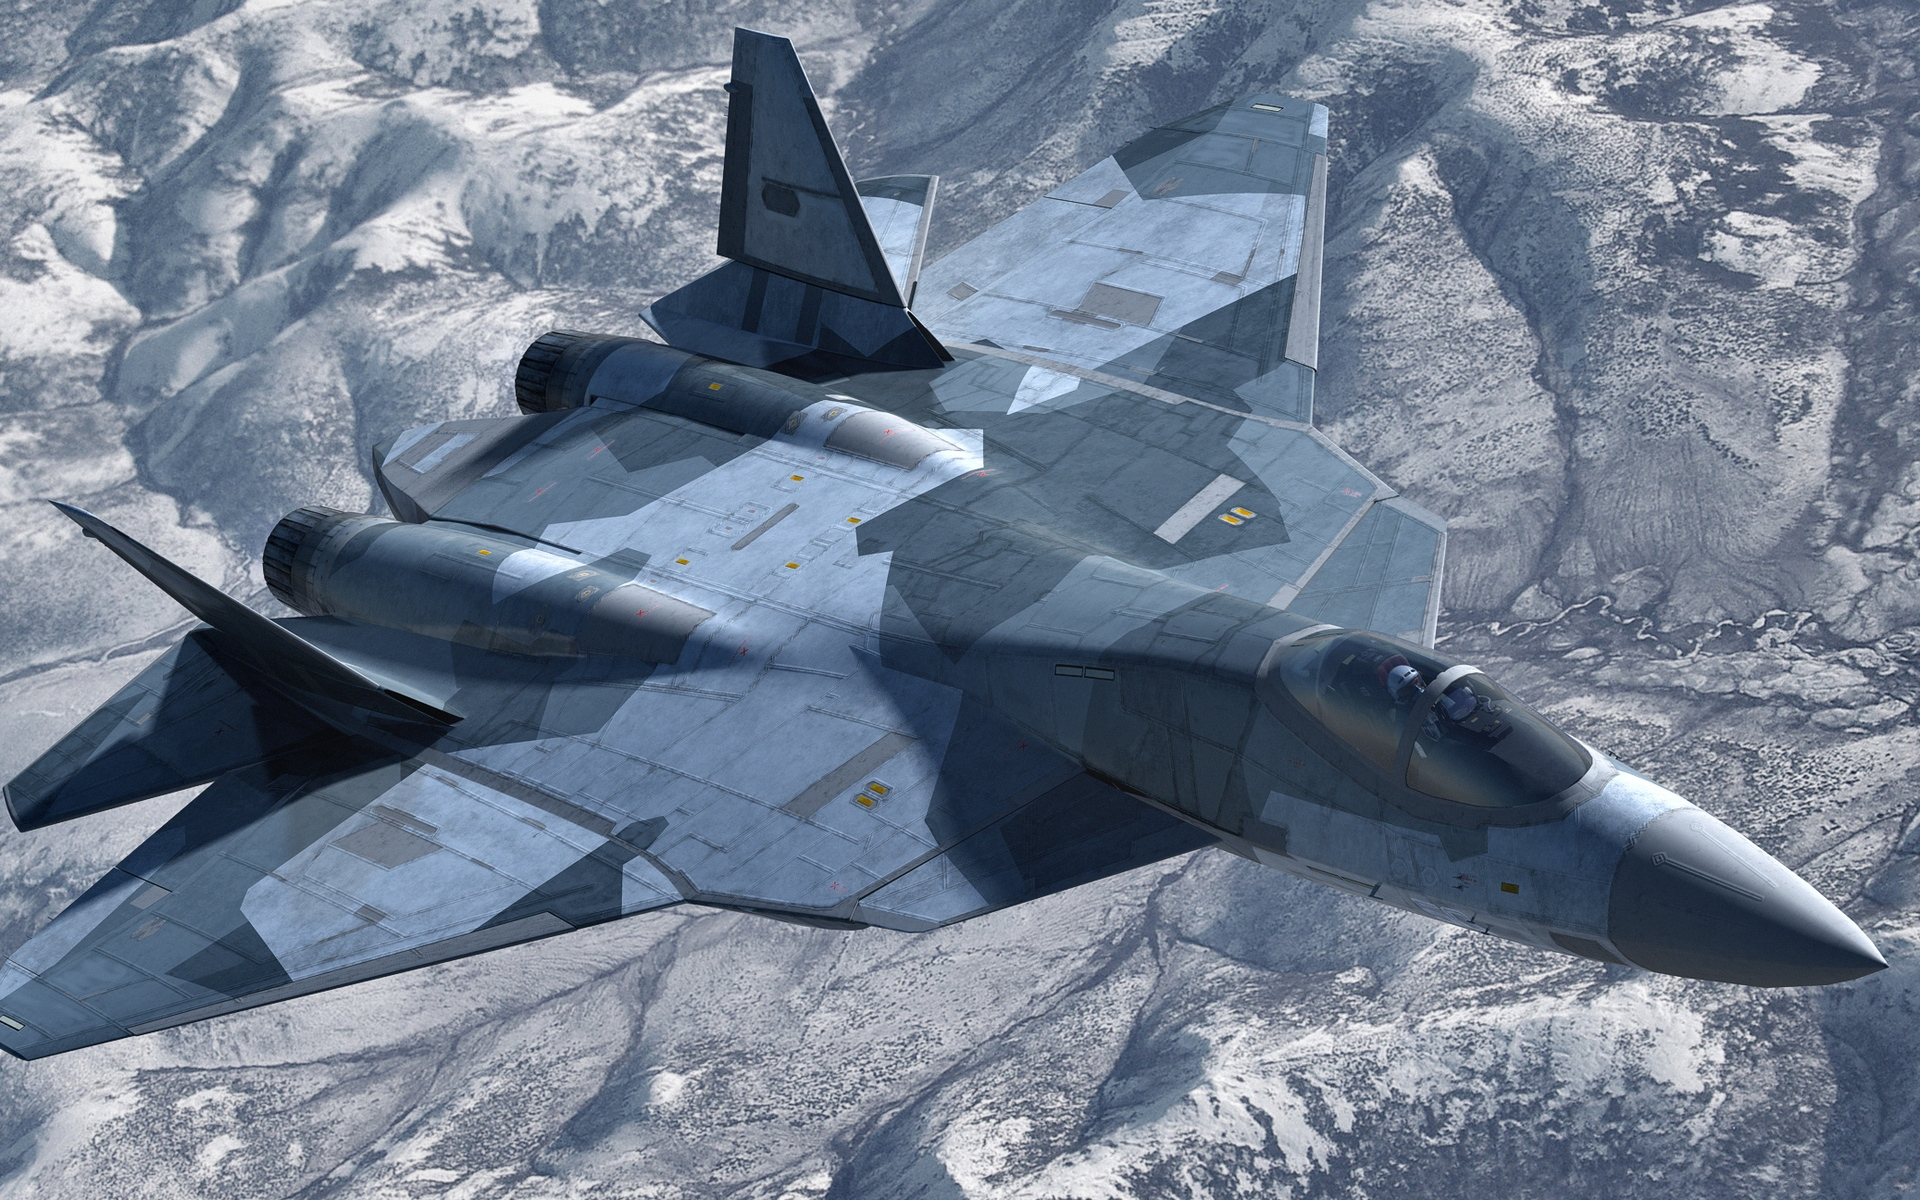 Sukhoi Su 57 Hd Wallpaper Background Image 1920x1200 Id Images, Photos, Reviews